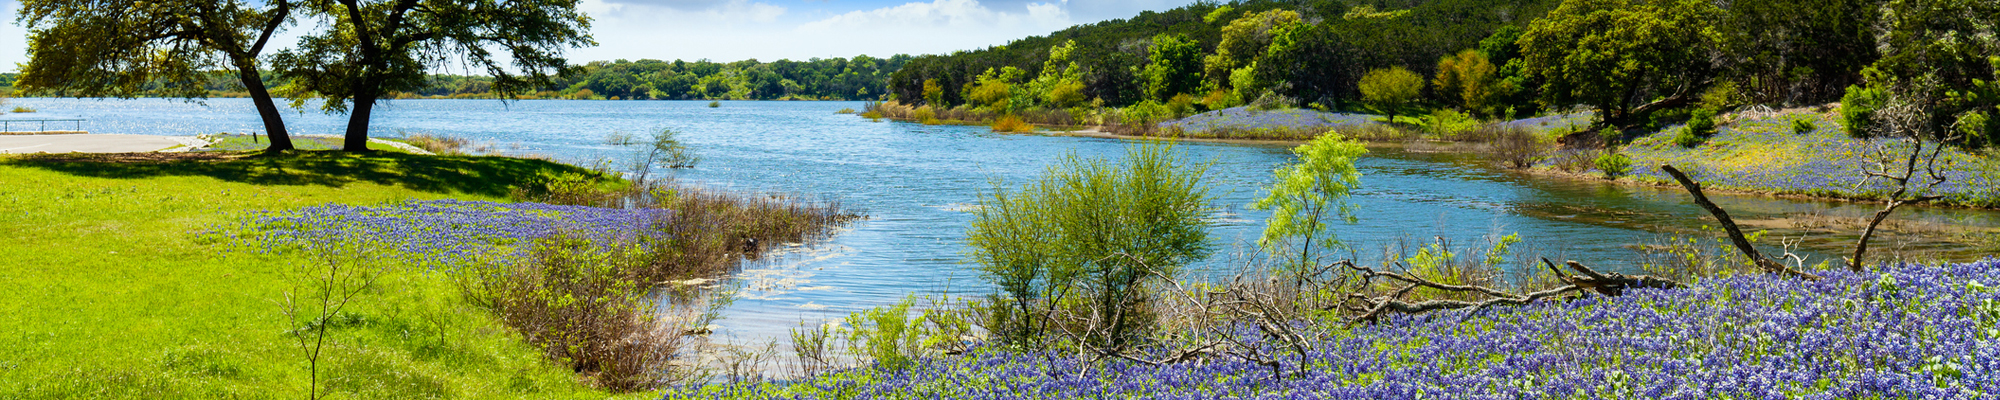 bluebonnets around a river